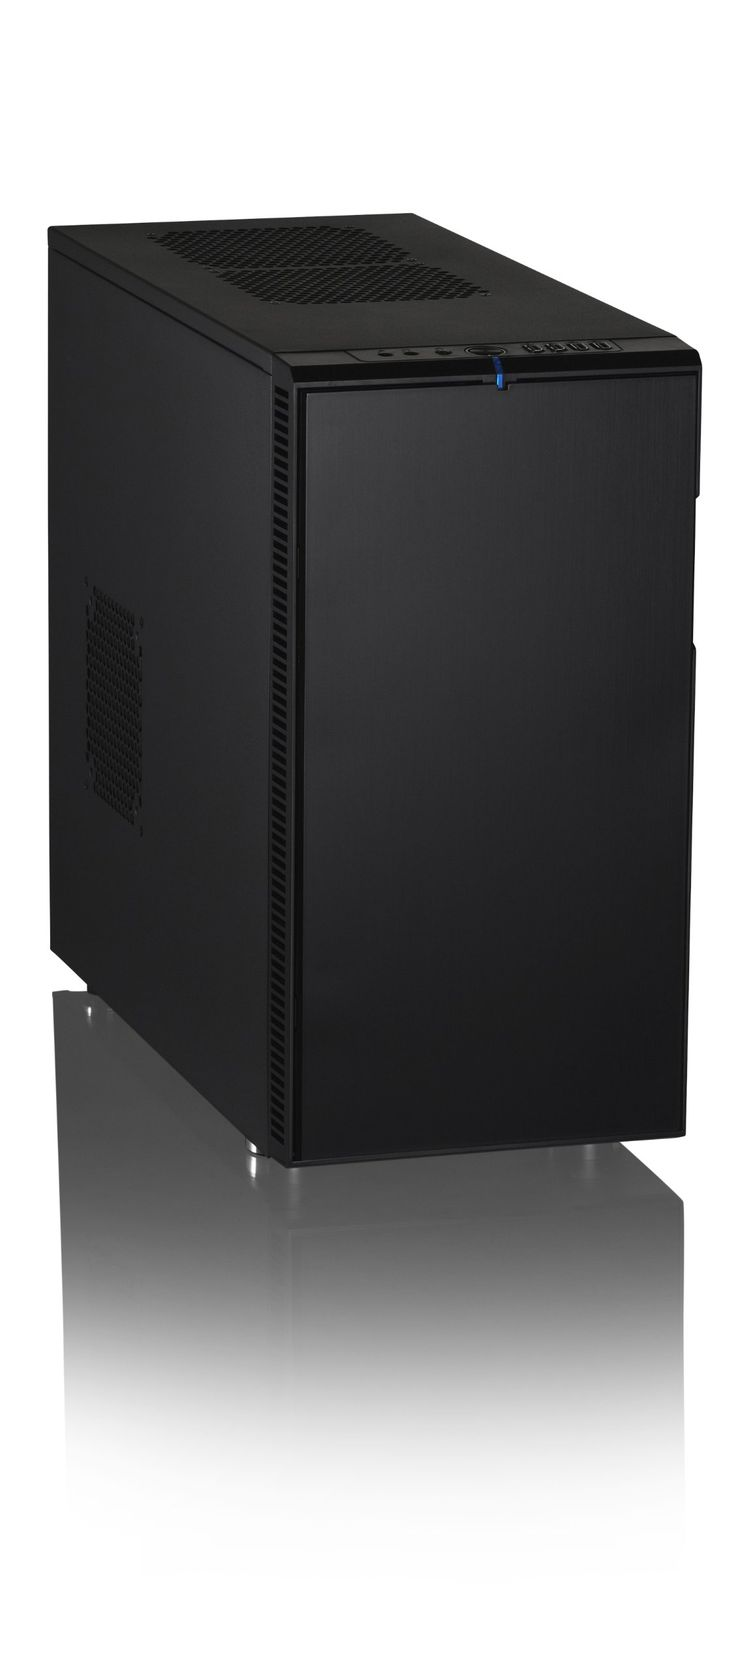 Amazon.com: Fractal Design Define R4 Cases, Black Pearl (FD-CA-DEF-R4-BL): Electronics